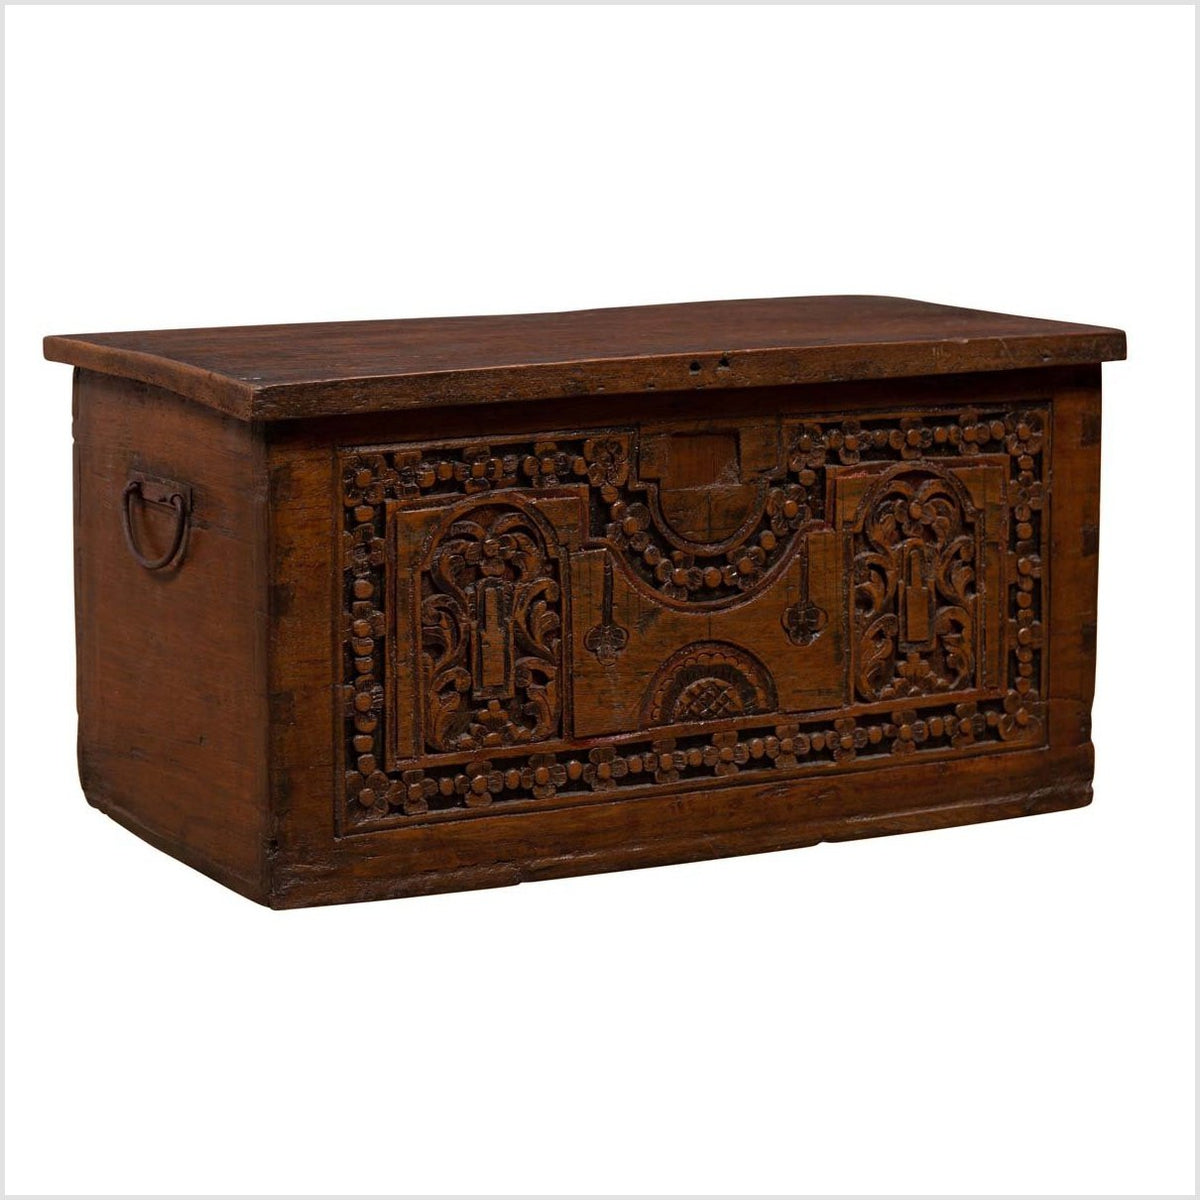 Antique Indonesian Decorative Wooden Box with Carved Flowers and Architecture